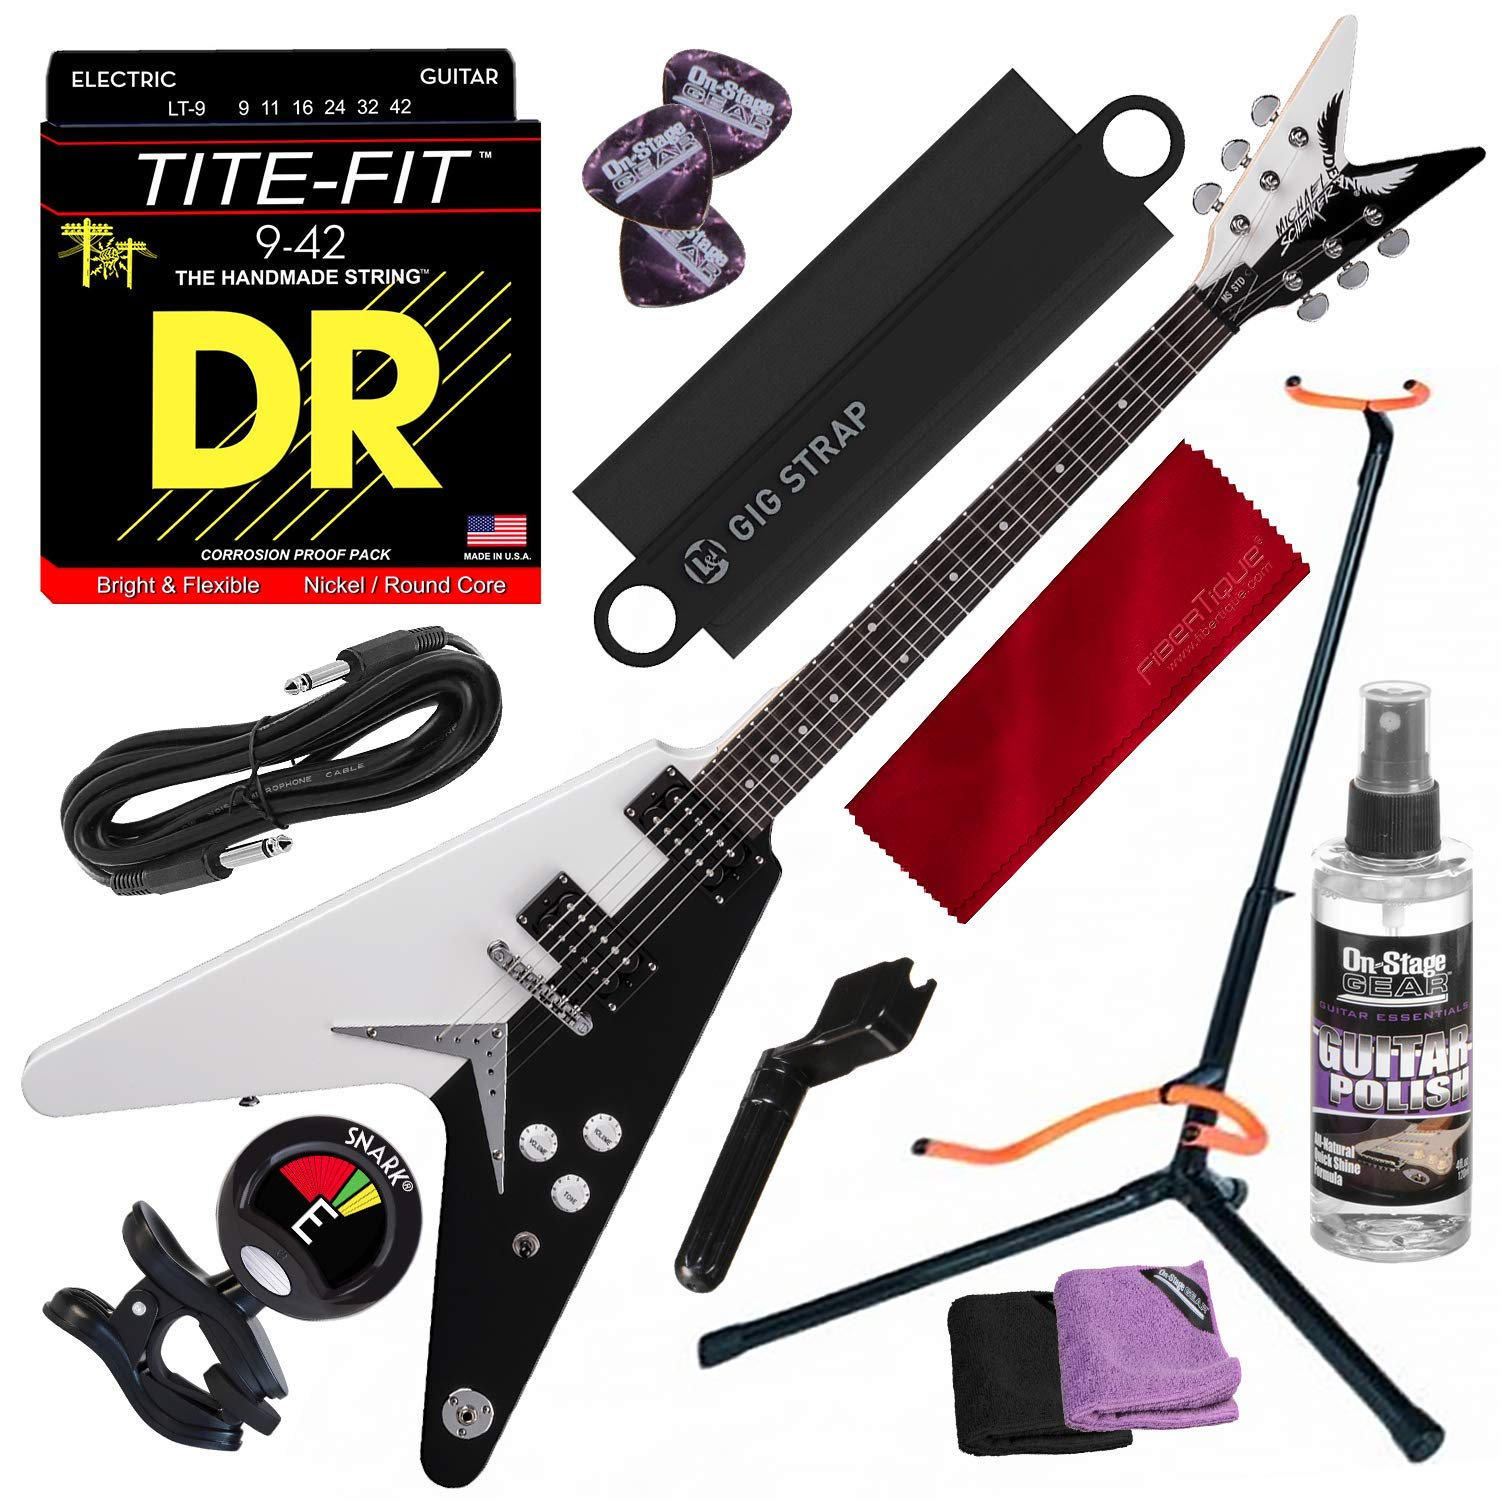 Cheap Dean Michael Schenker Standard Electric Guitar with Guitar Stand & Clip-on Tuner Deluxe Accessory Bundle Black Friday & Cyber Monday 2019